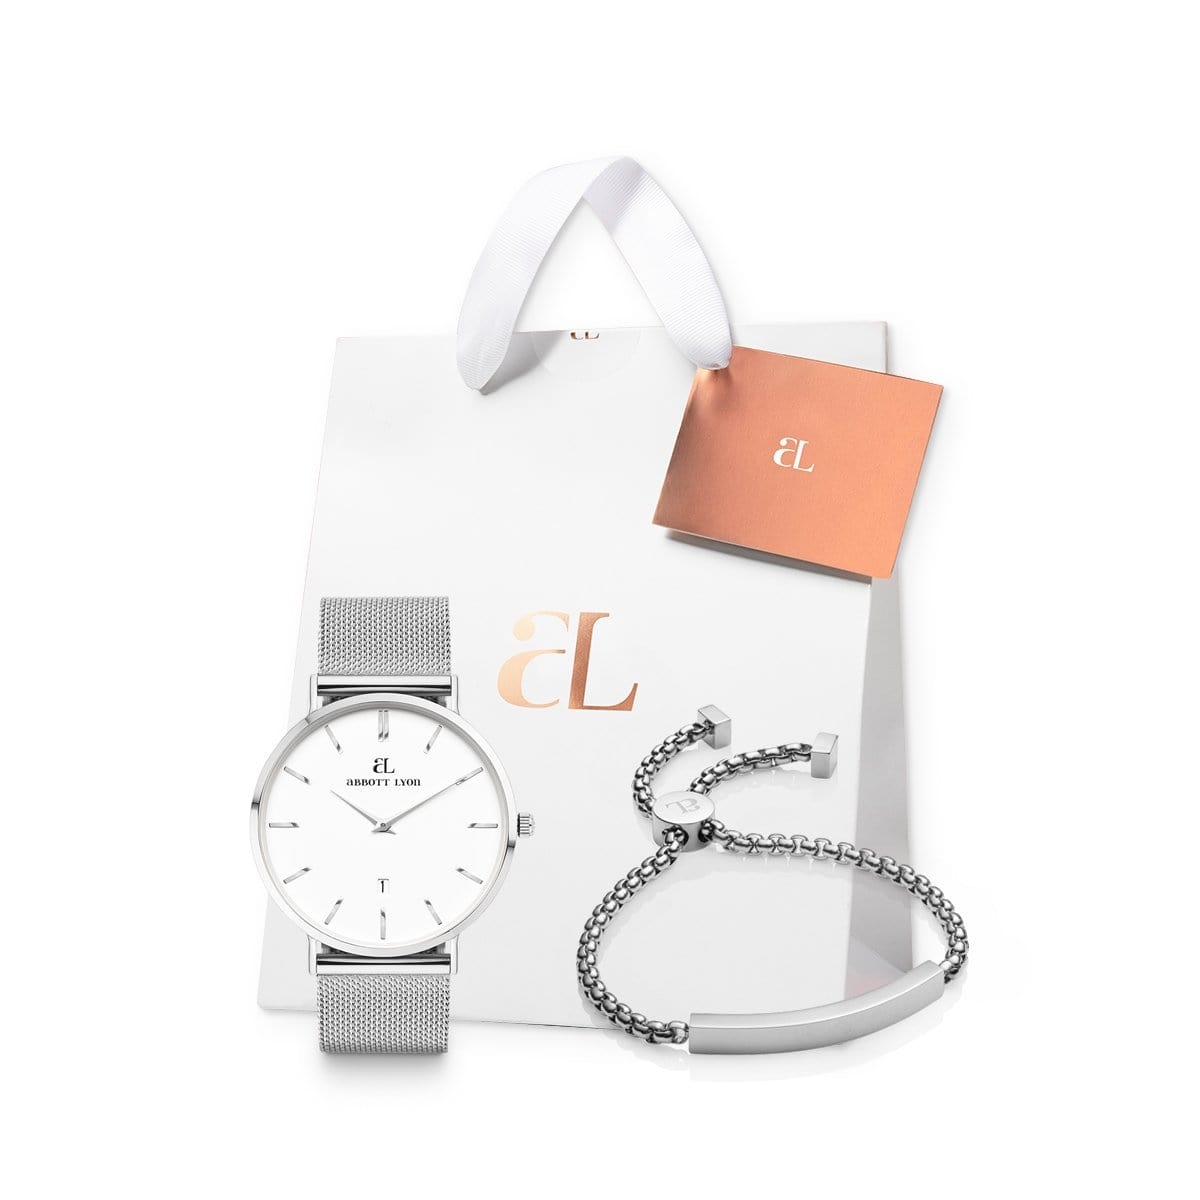 Silver Chain Kensington 40 Personalise Gift Set